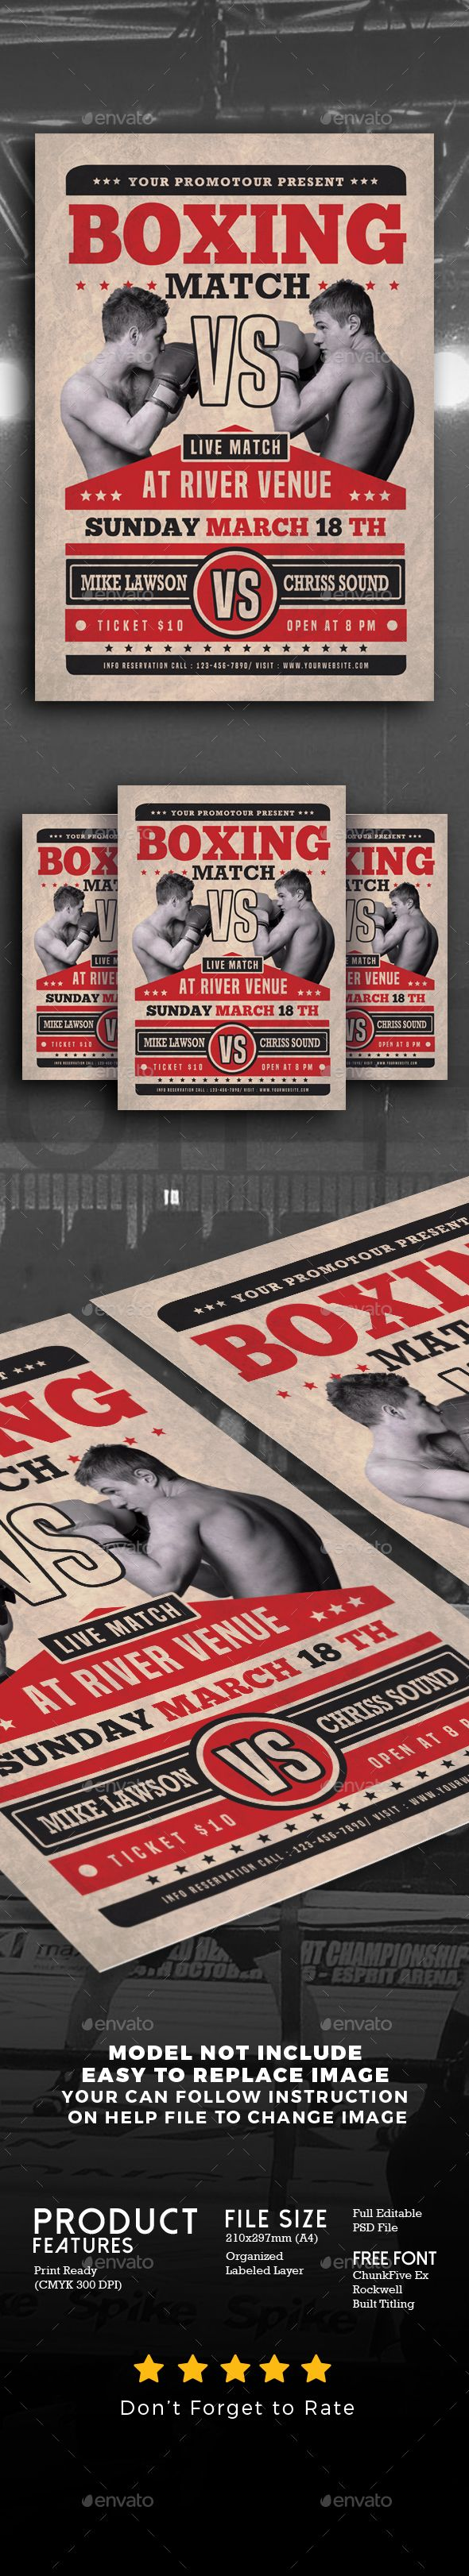 Boxing Match Flyer - Events Flyers